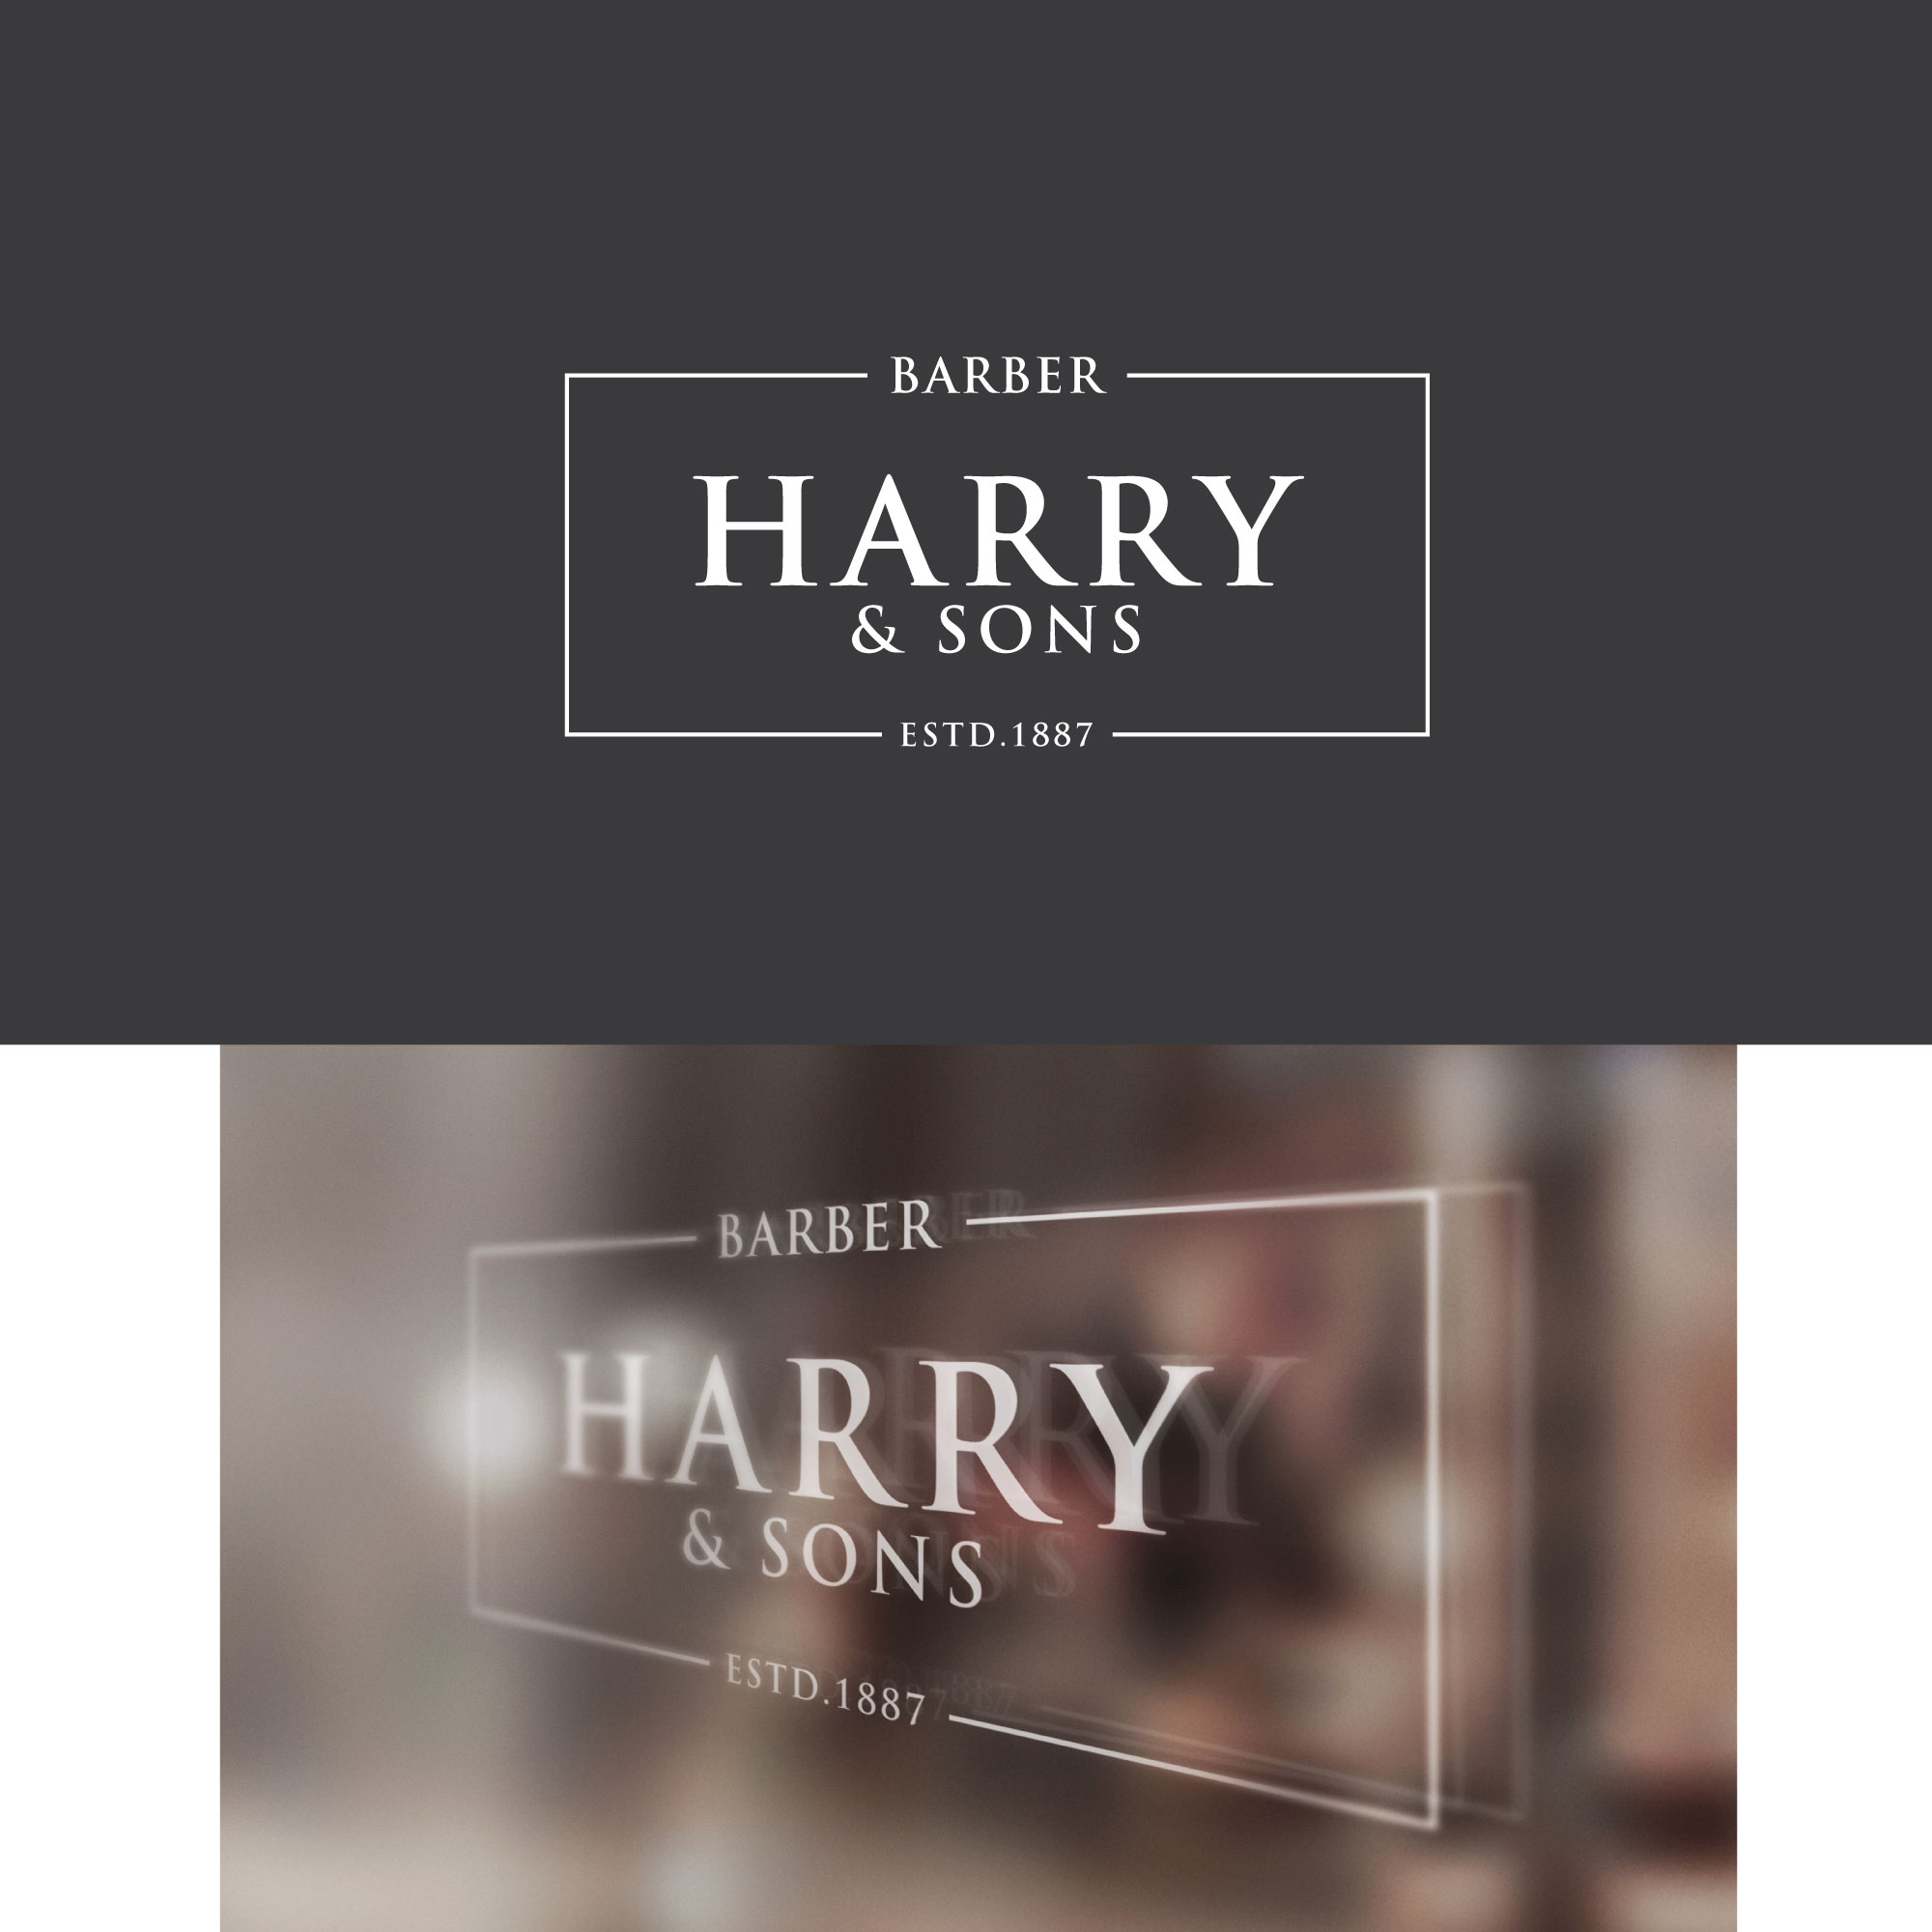 Logo Design by Roza Apostolska - Entry No. 212 in the Logo Design Contest Captivating Logo Design for Harry and Sons Barber.